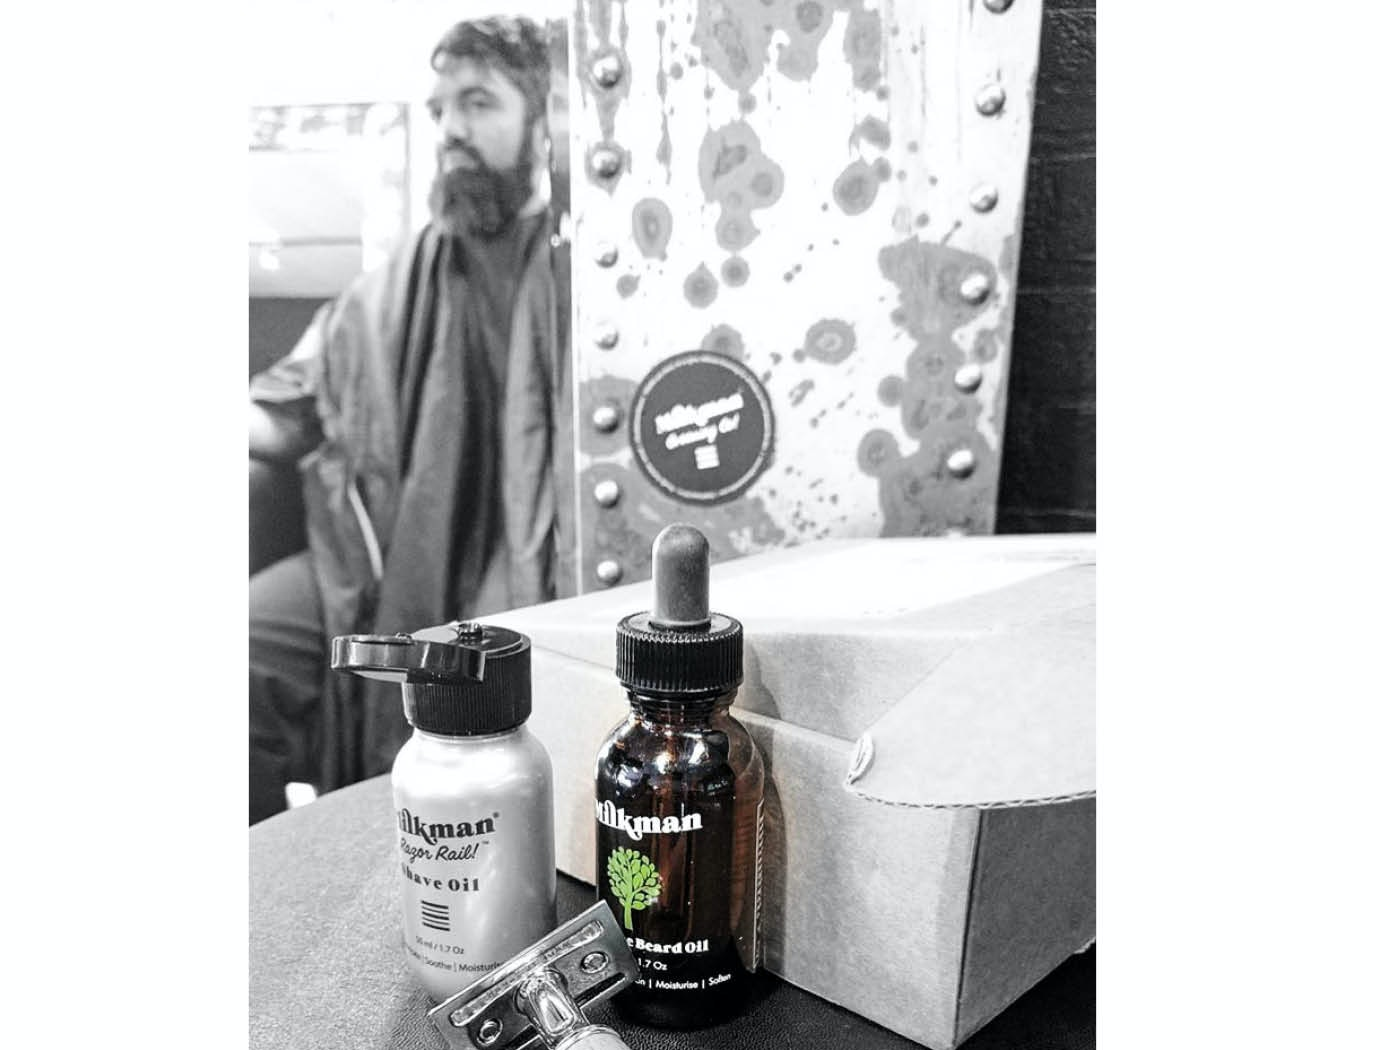 Milkman Grooming Co package sweepstakes